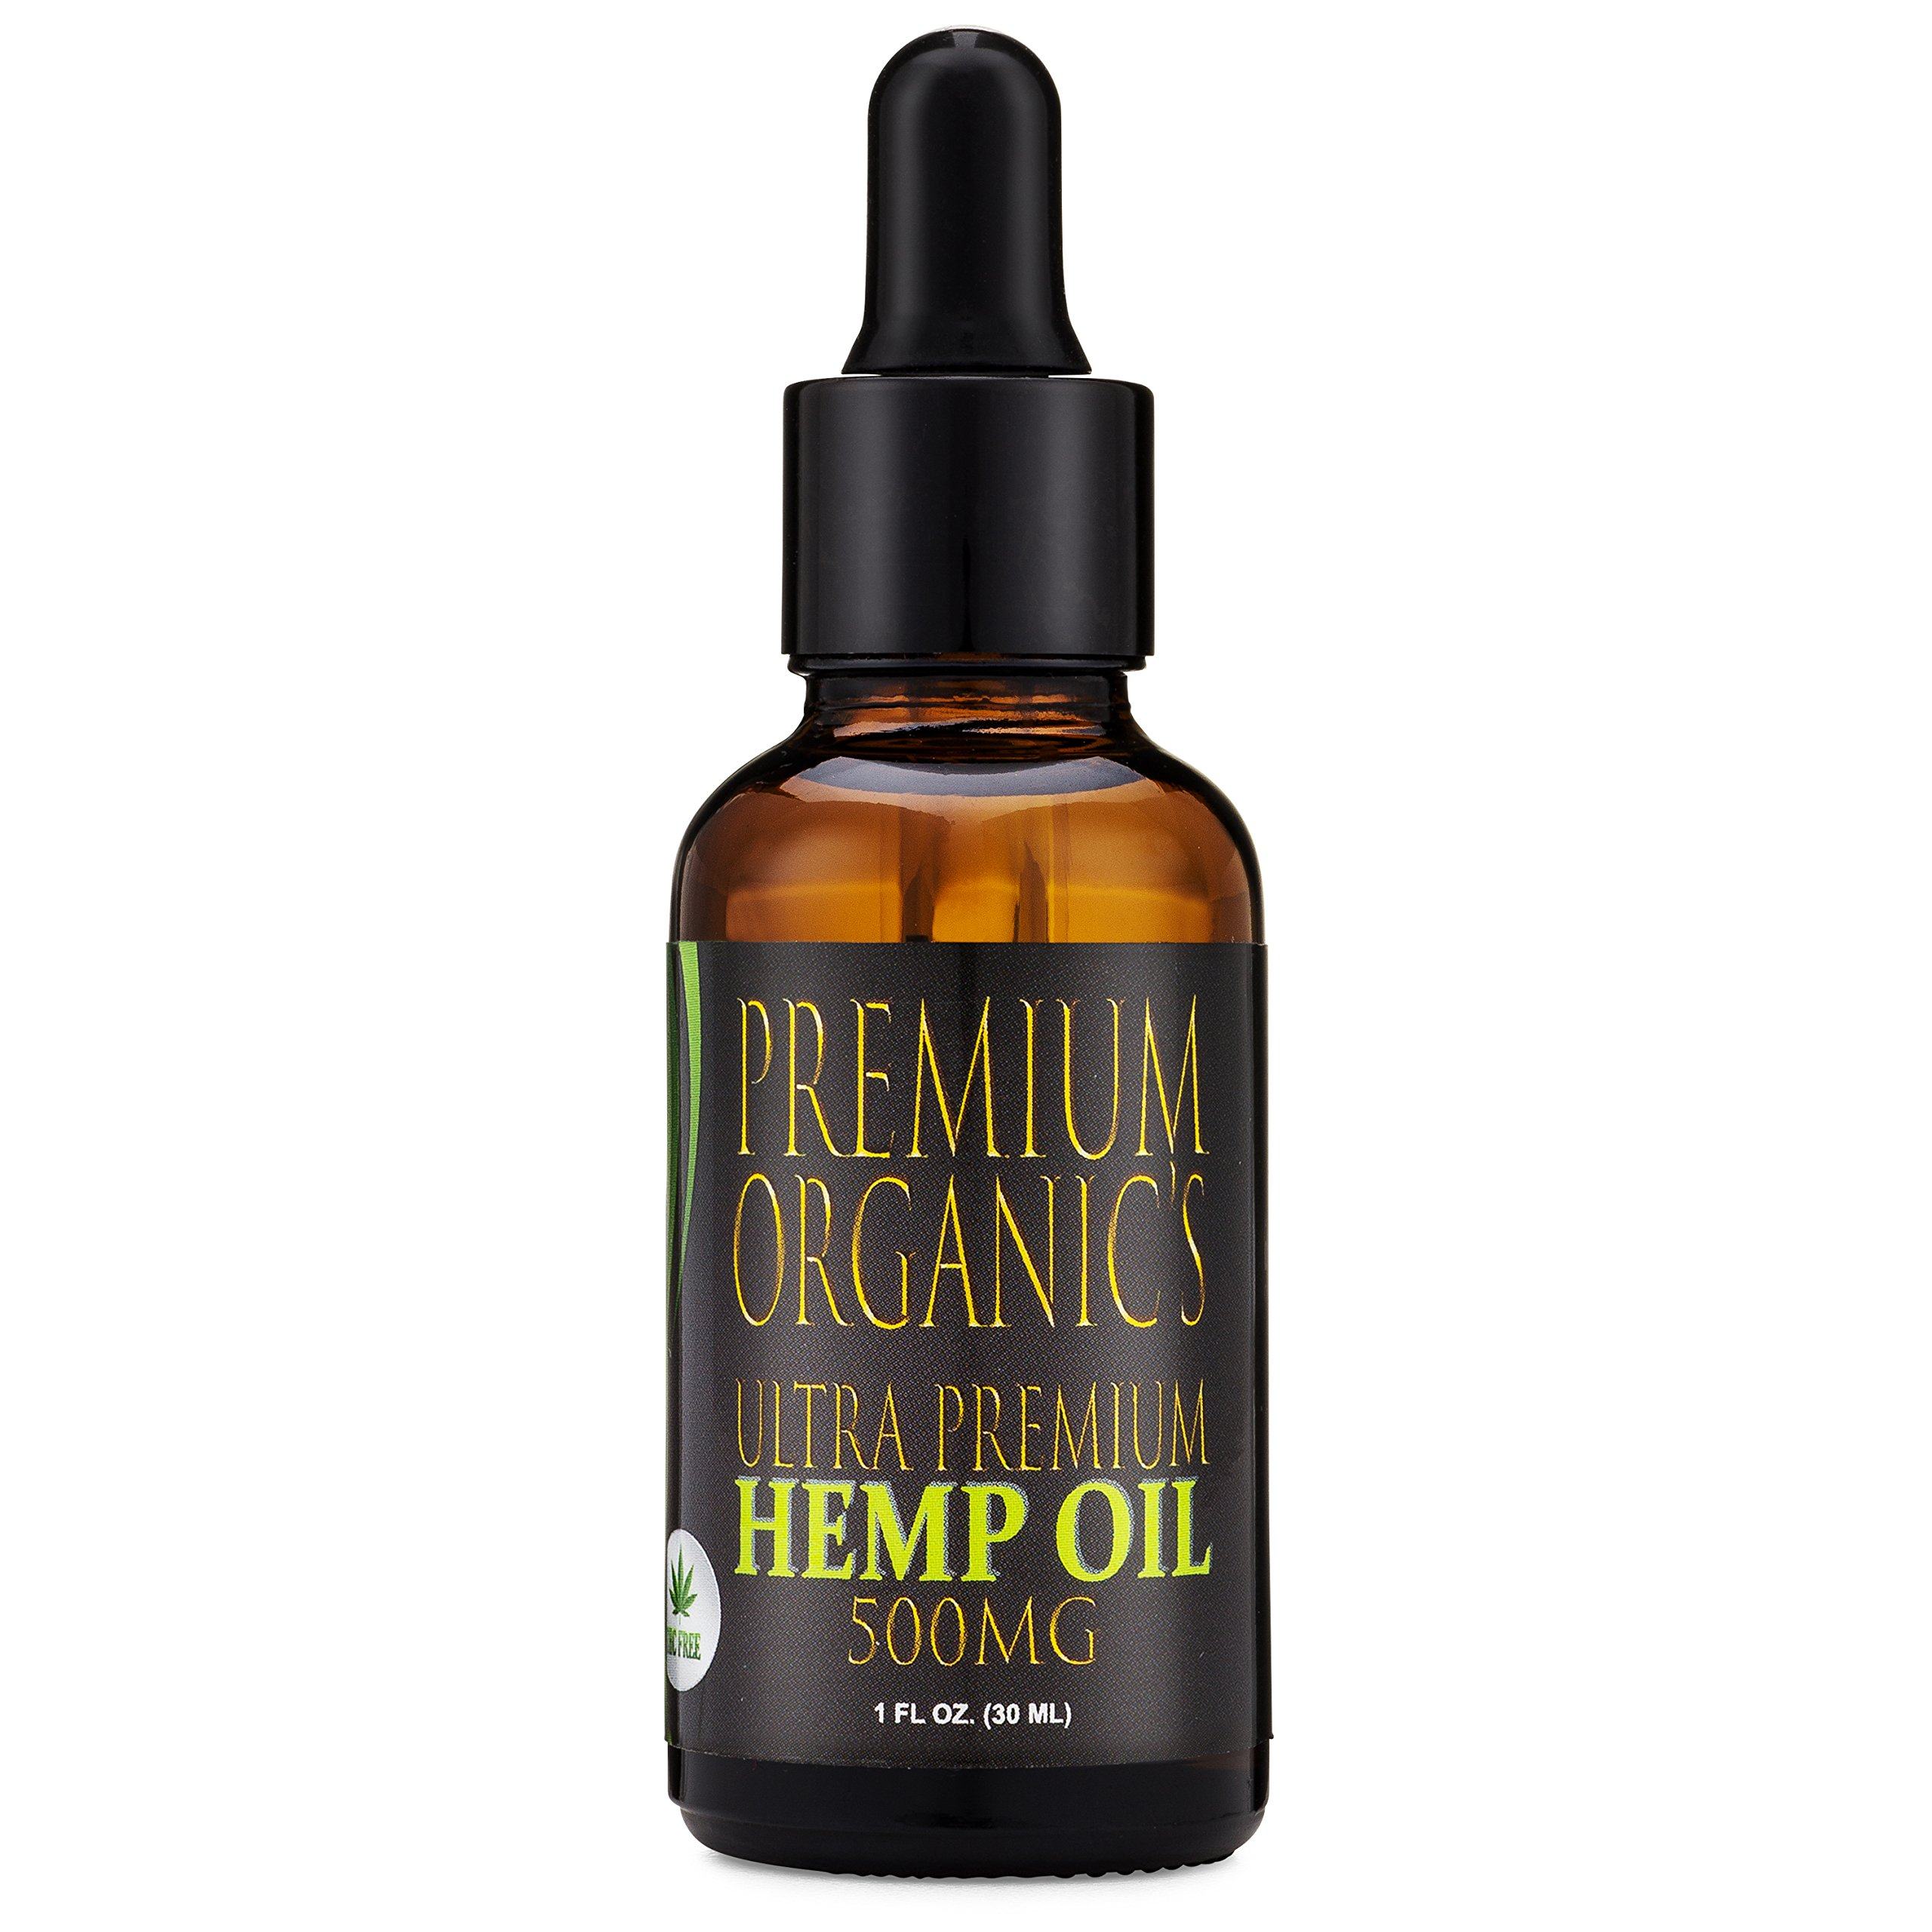 Hemp Oil for Pain Relief :: Stress Relief :: Anti Anxiety Supplements:: Herbal Drops :: Rich in Omega 3 and Omega 6 Fatty Acids :: Natural Anti Inflammatory :: 1 Fl Oz. (30ml)